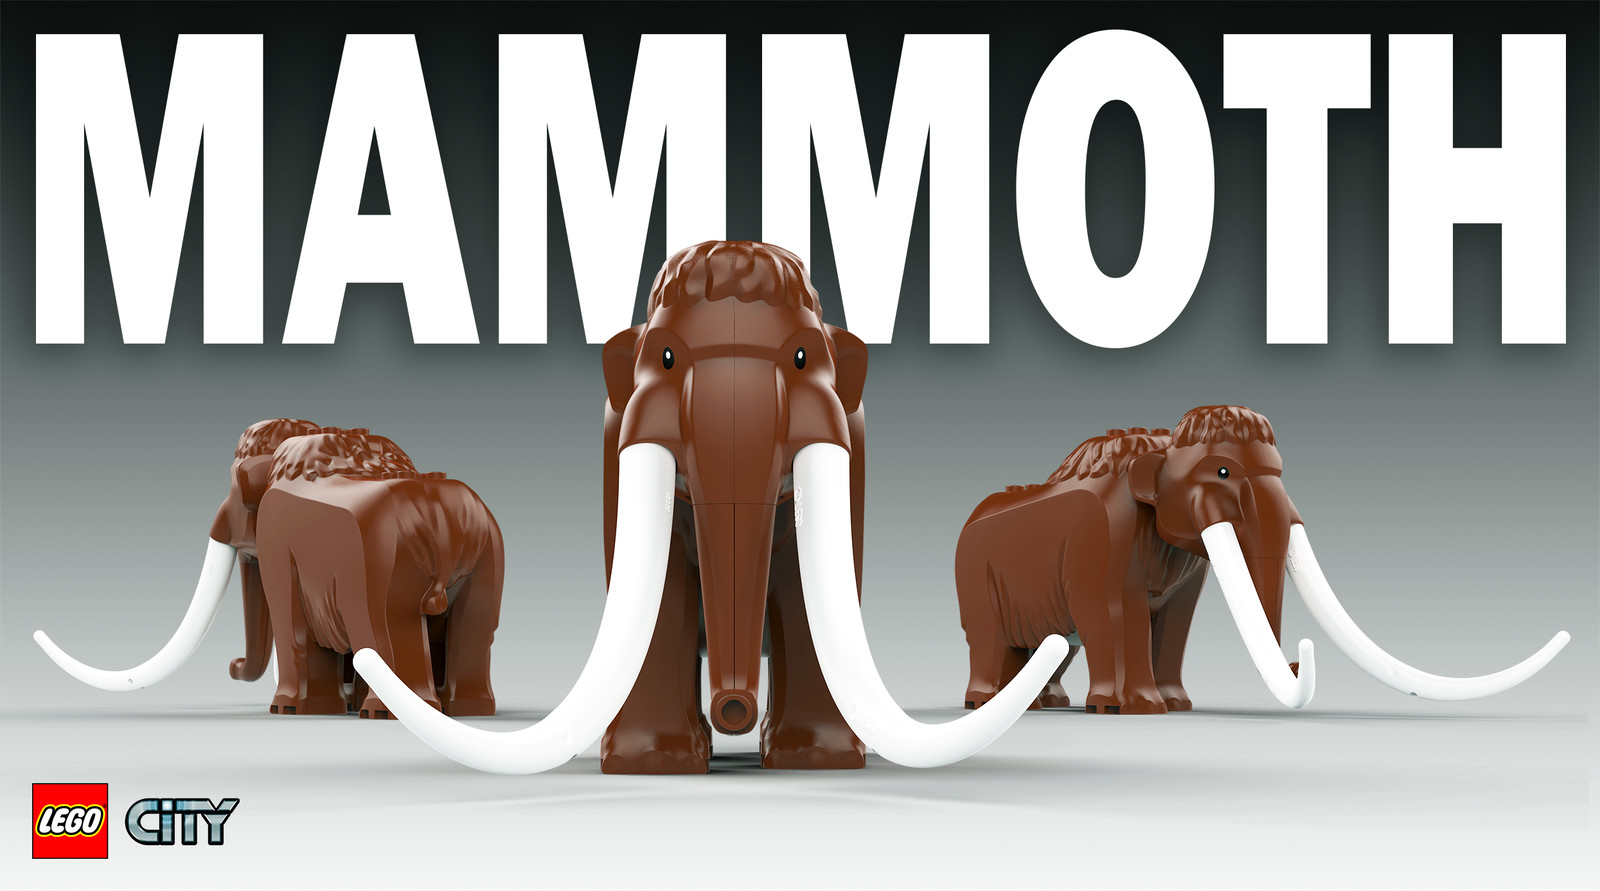 LEGO City Mammoth